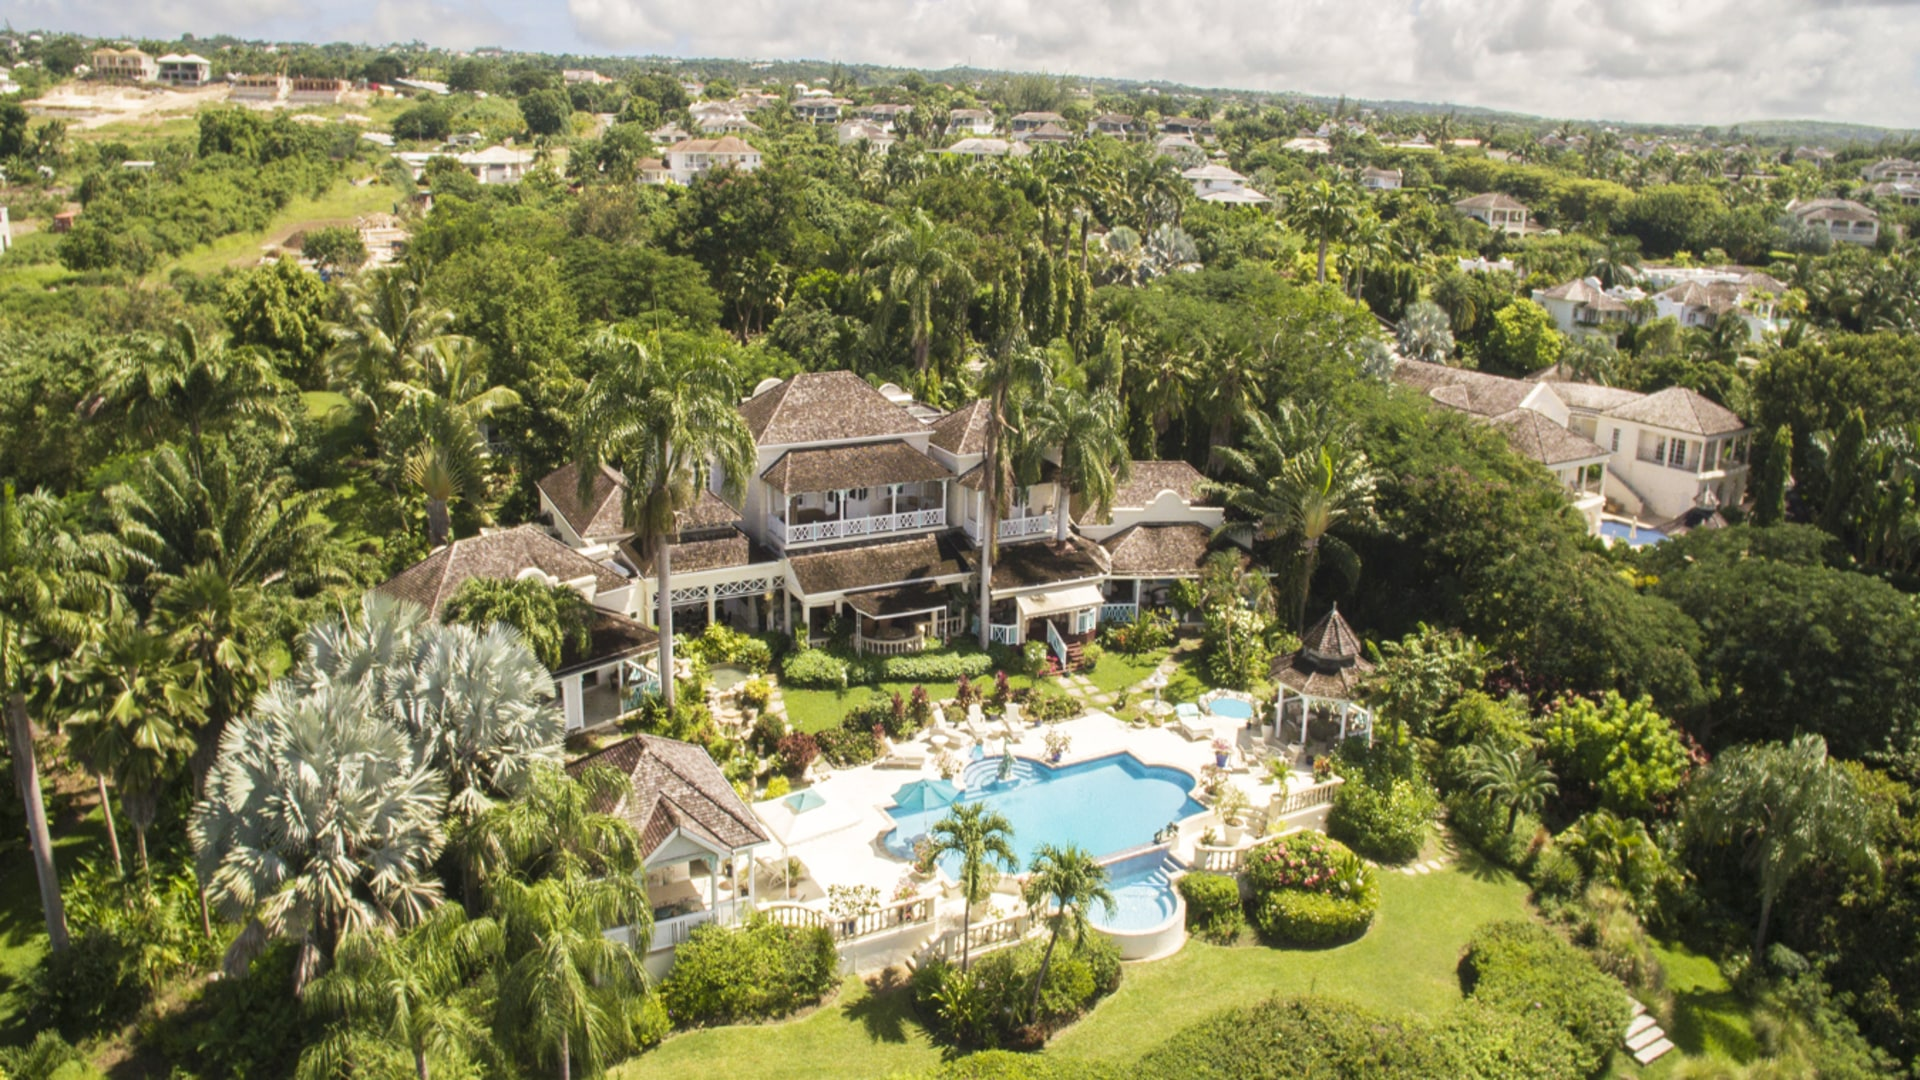 Coral Sundown - House - Property for Sale in Barbados - Terra Luxury